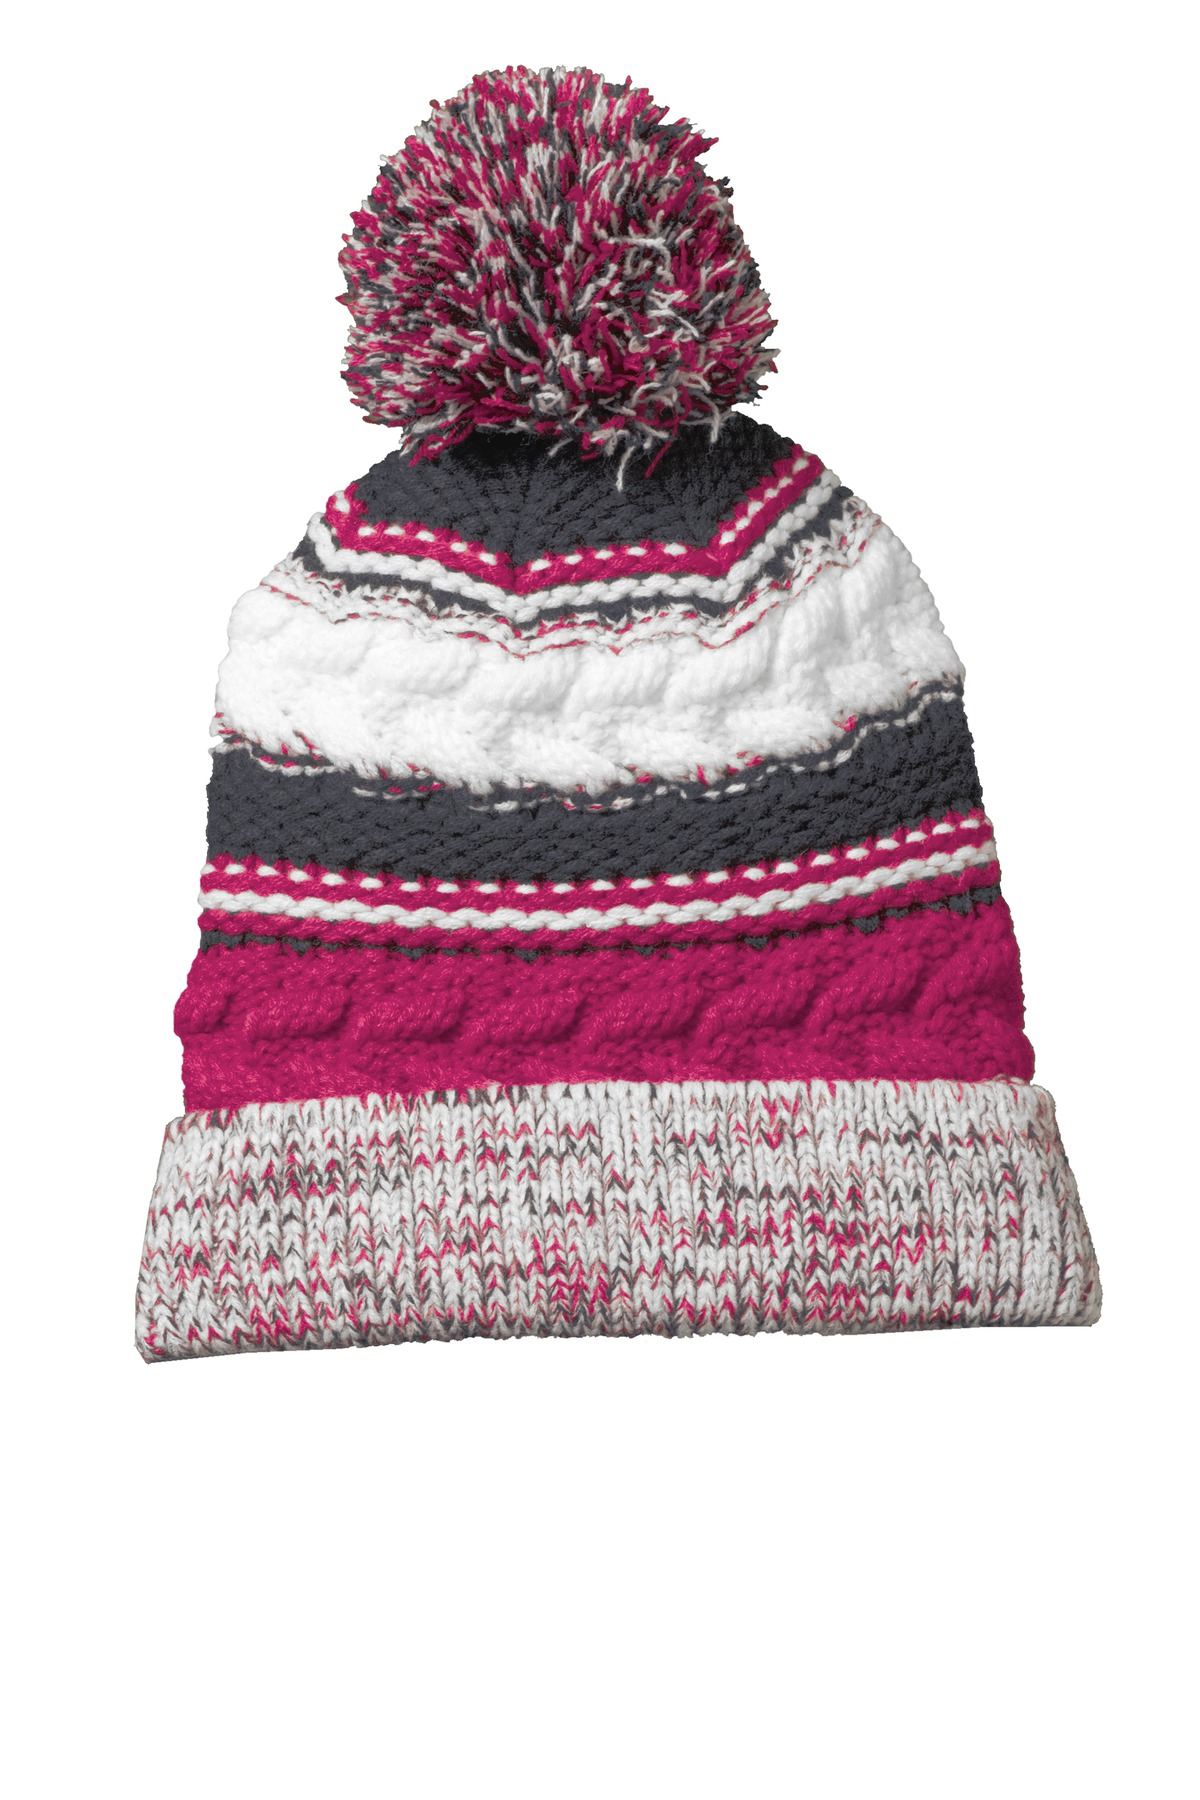 Sport-Tek ®  Pom Pom Team Beanie. STC21 - Pink Raspberry/Iron Grey/White